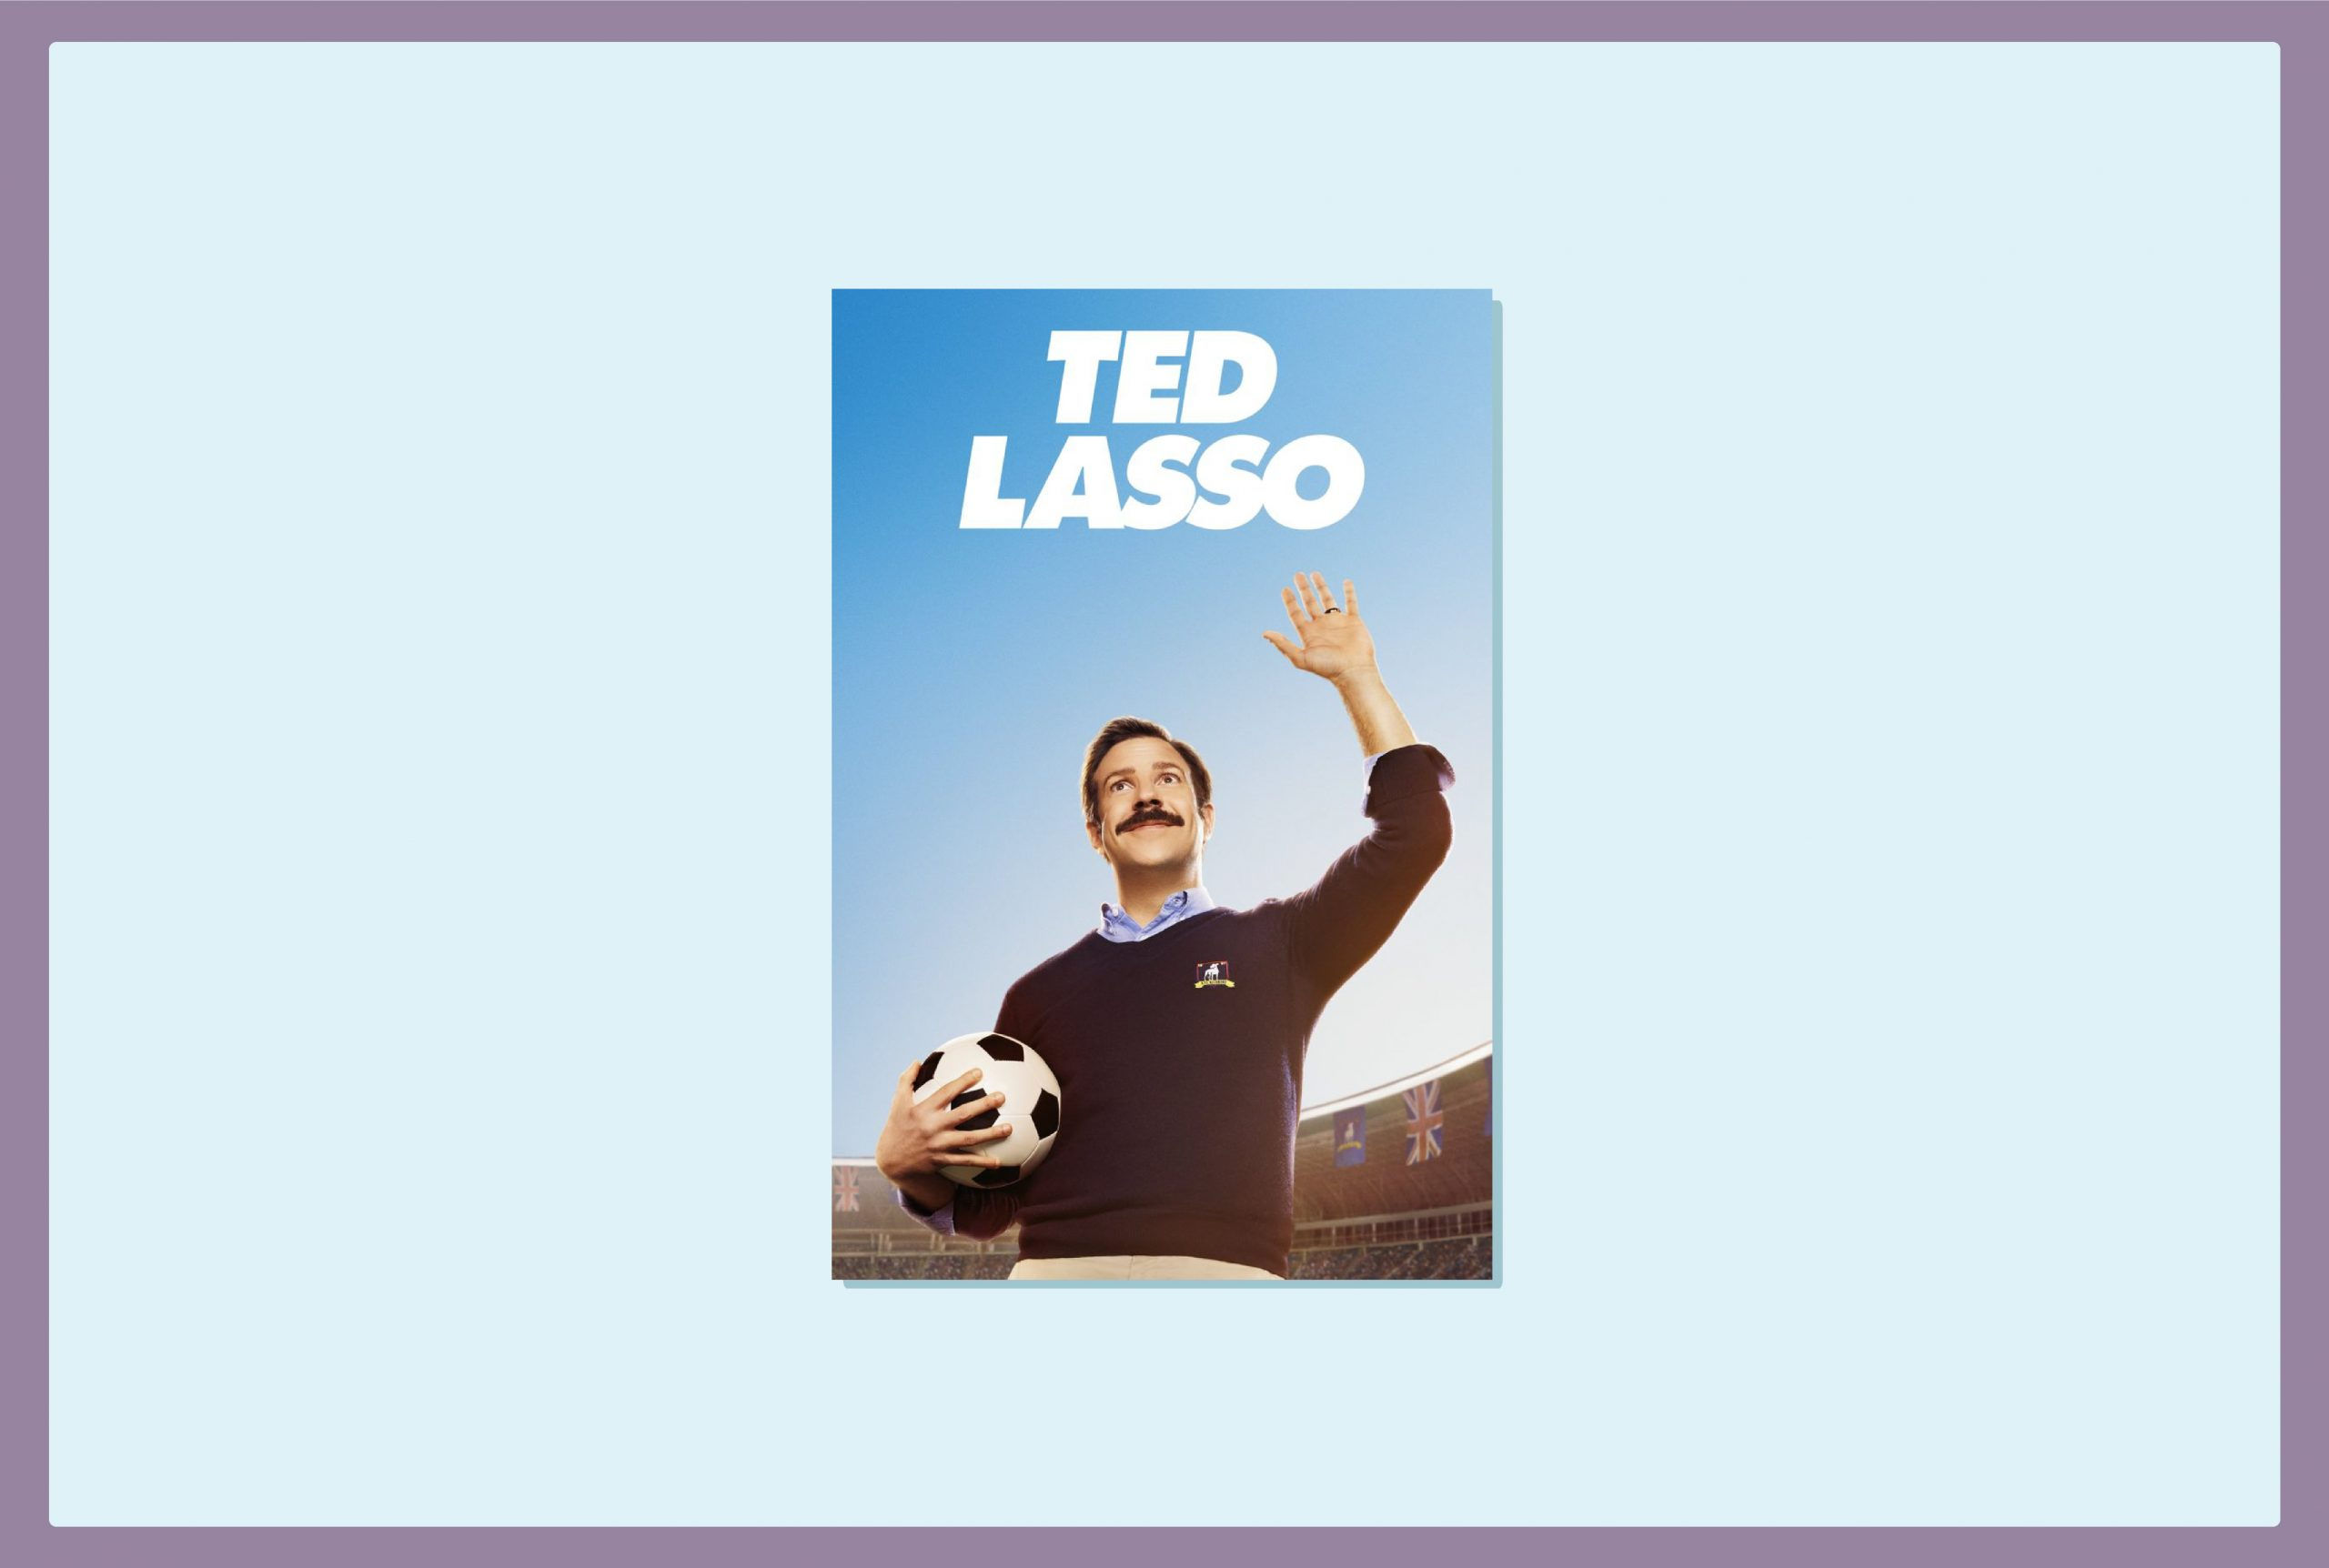 A white, moustachioed man holds a football in his right hand and his left hand is lifted into a fist indicating victory. Above him reads the title 'Ted Lasso'